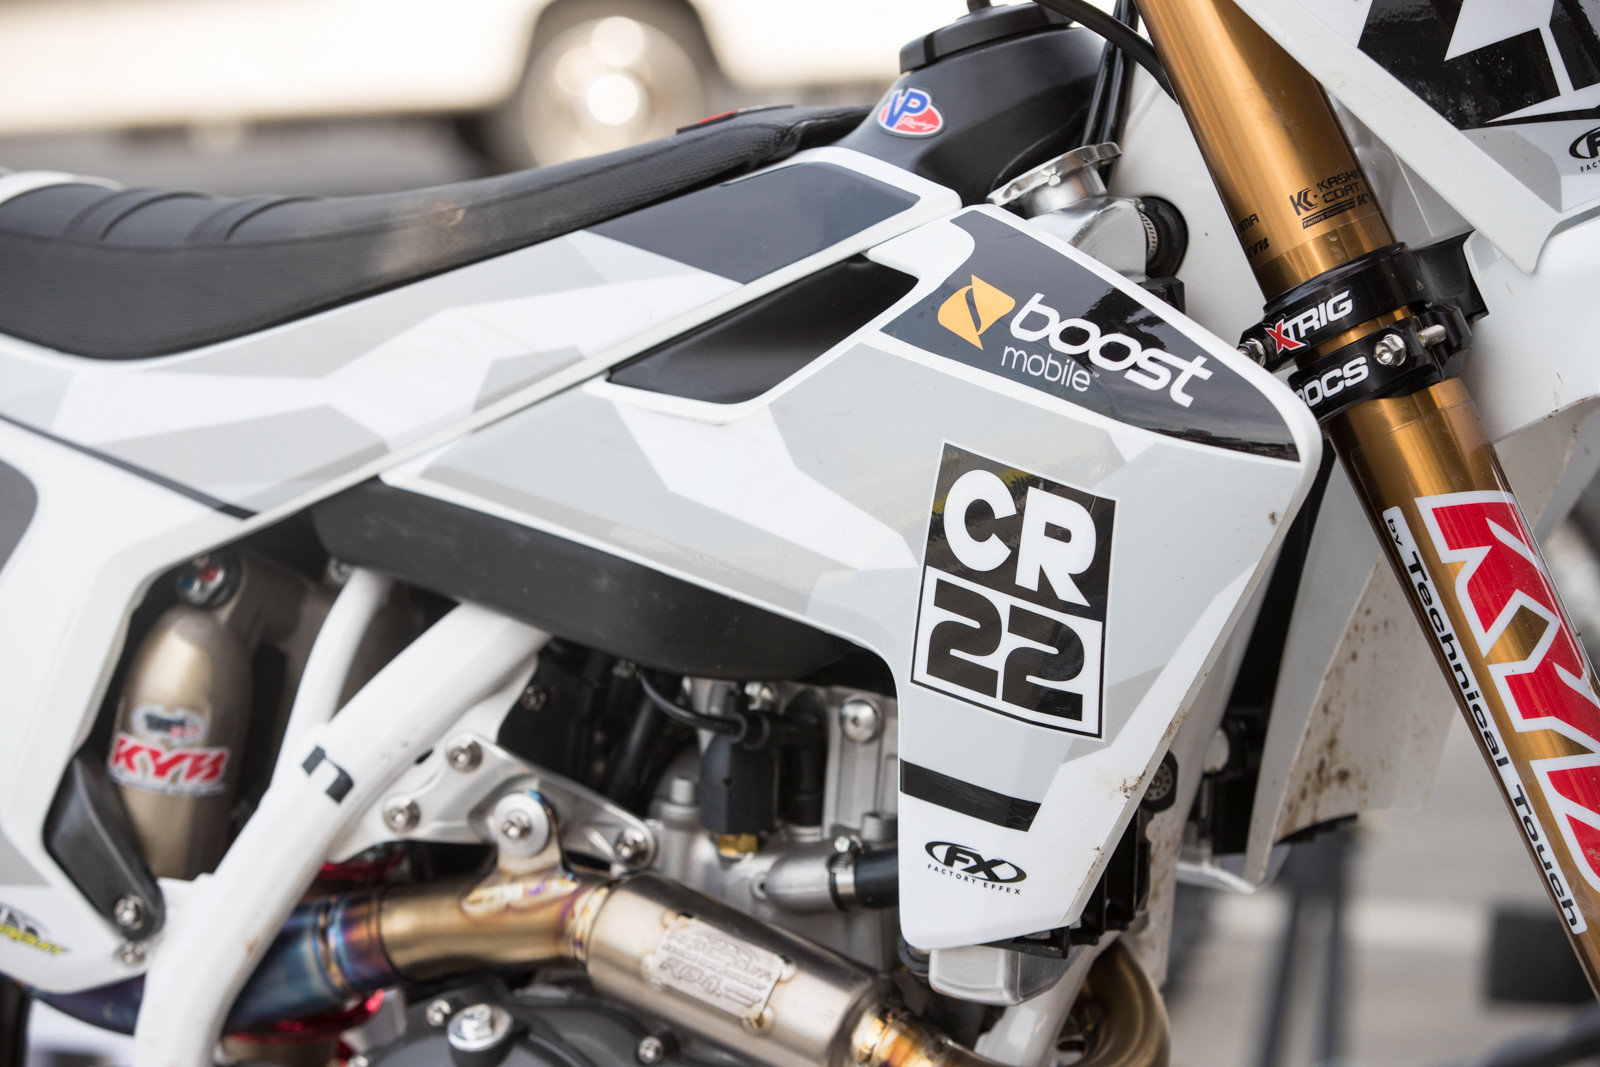 Chad Reed's layout is clean, featuring his own branding, along with Boost Mobile Australia and Speedzone Motorsports.